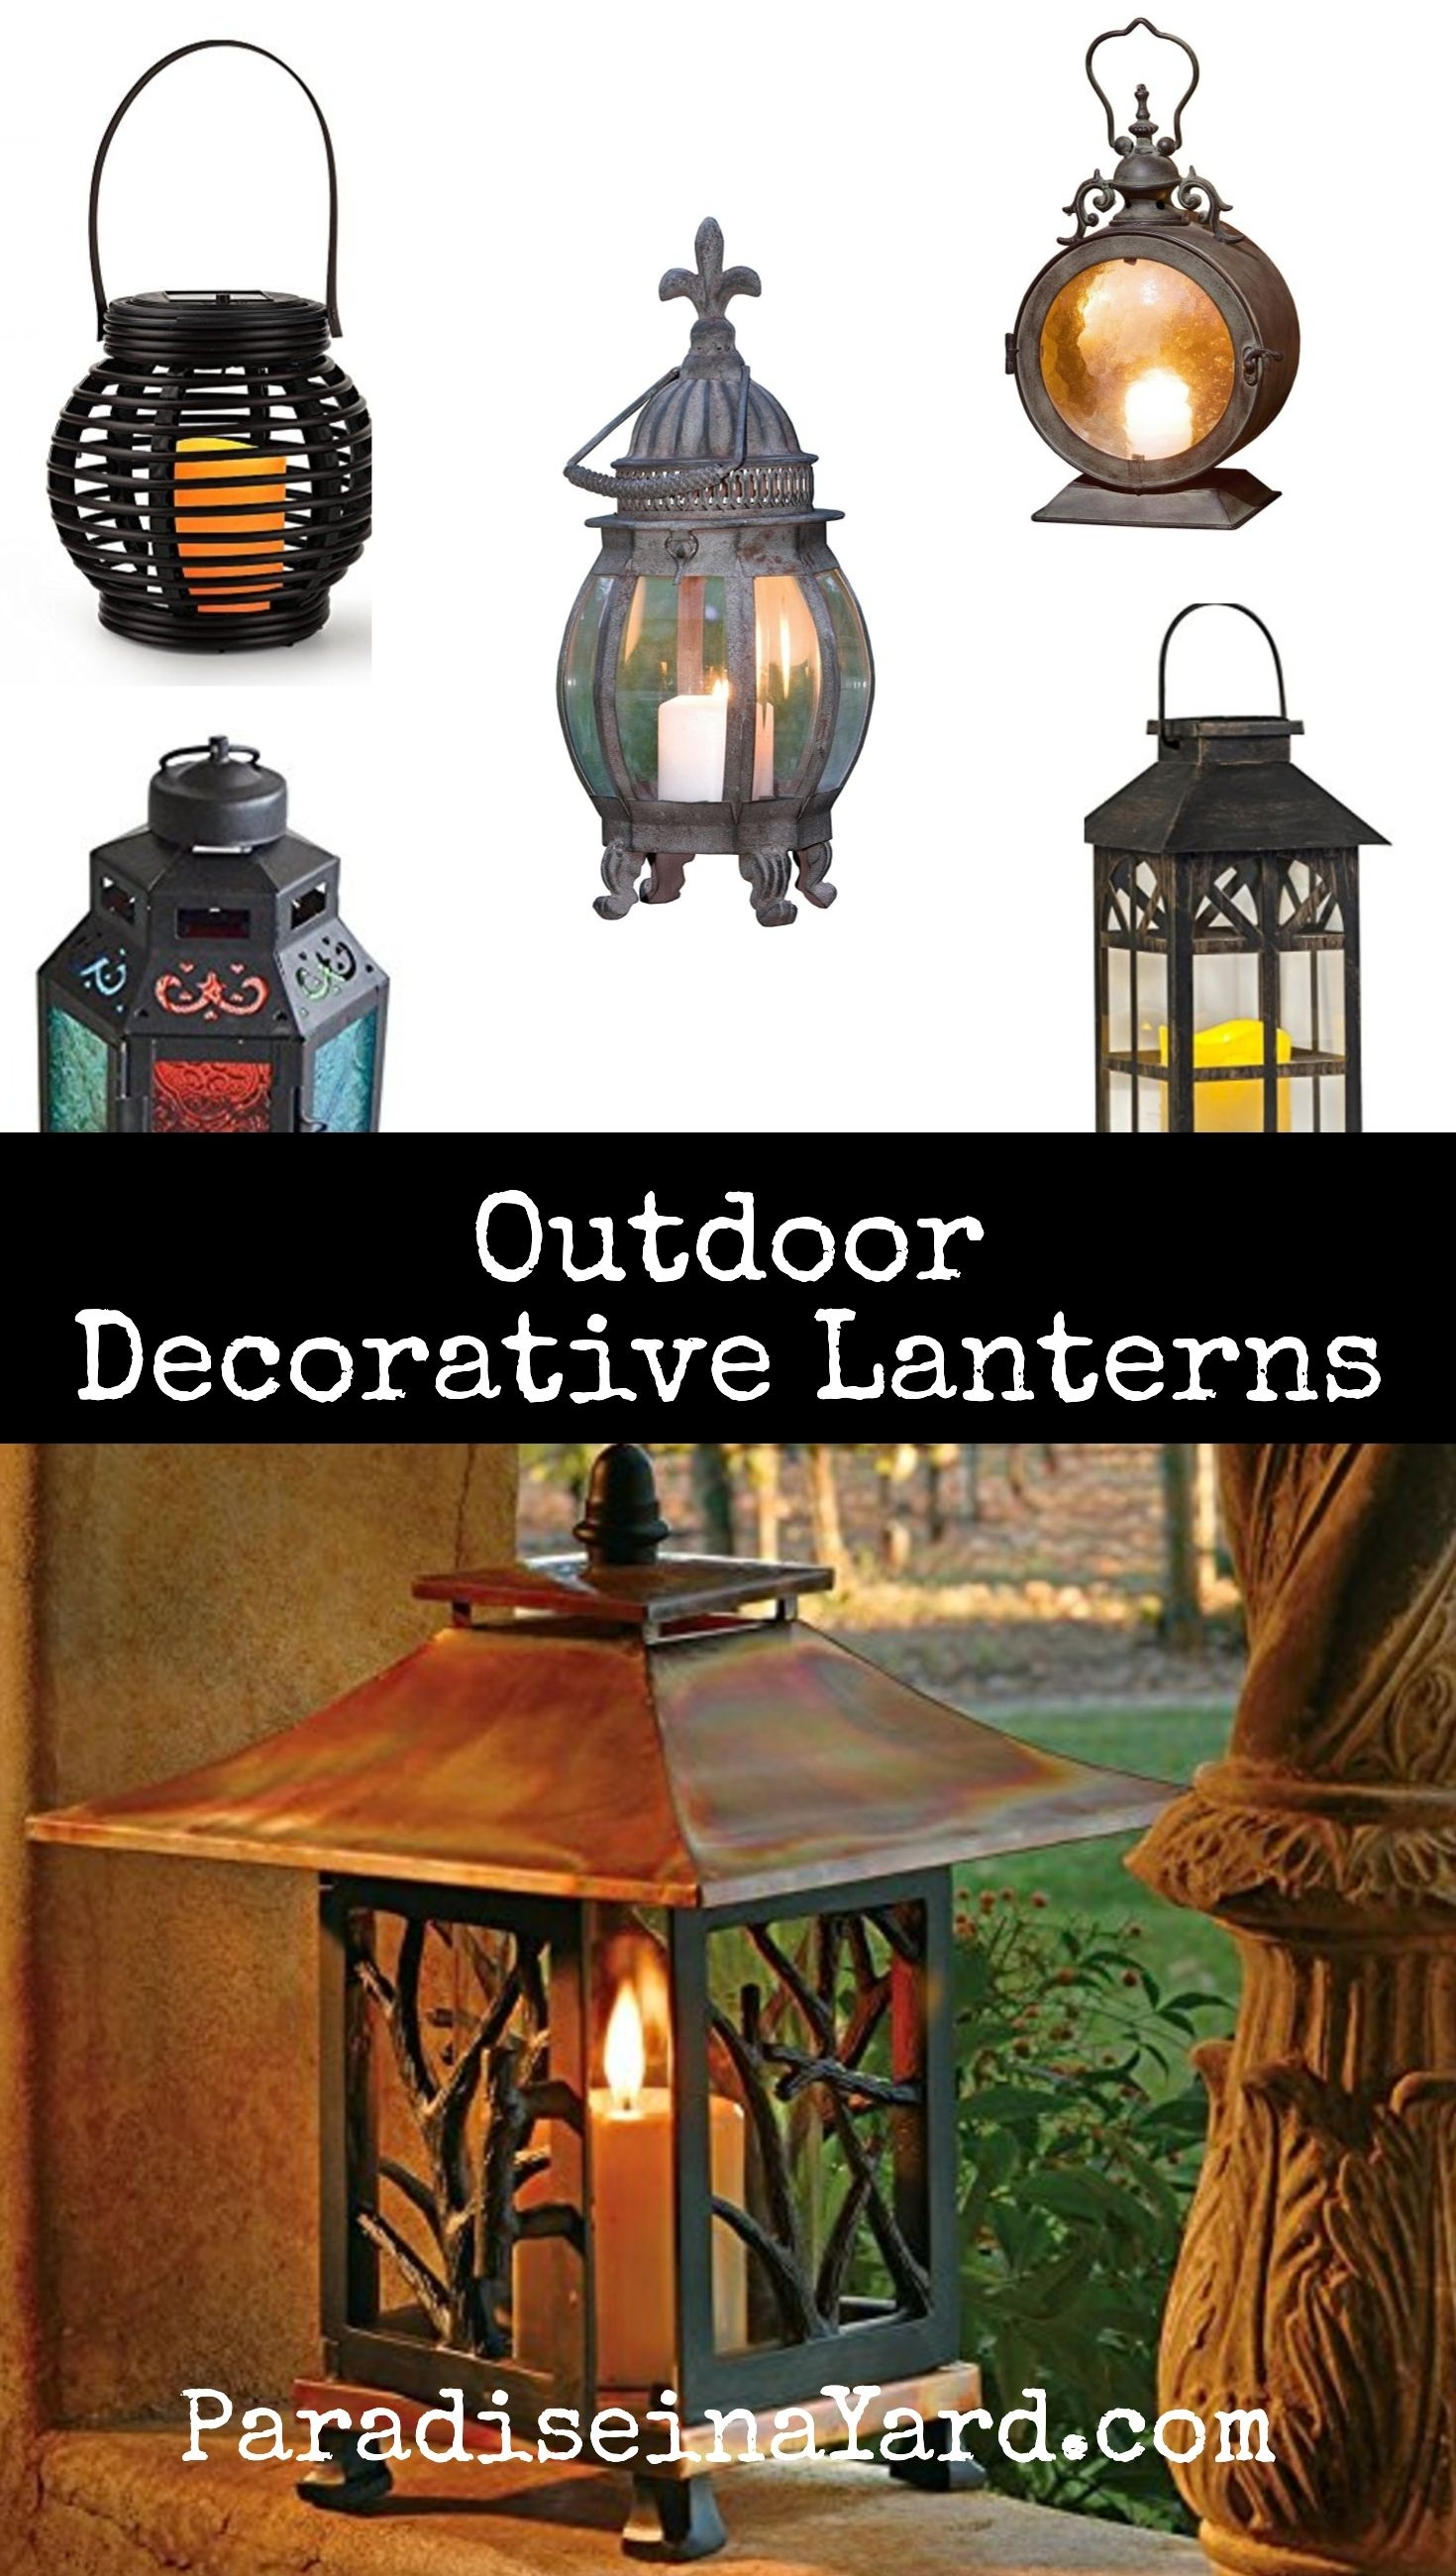 10 Decorative Lanterns For Outdoor Decor Ideas – Patio, Porch, Deck Pertaining To Outdoor Lanterns For Porch (View 1 of 20)